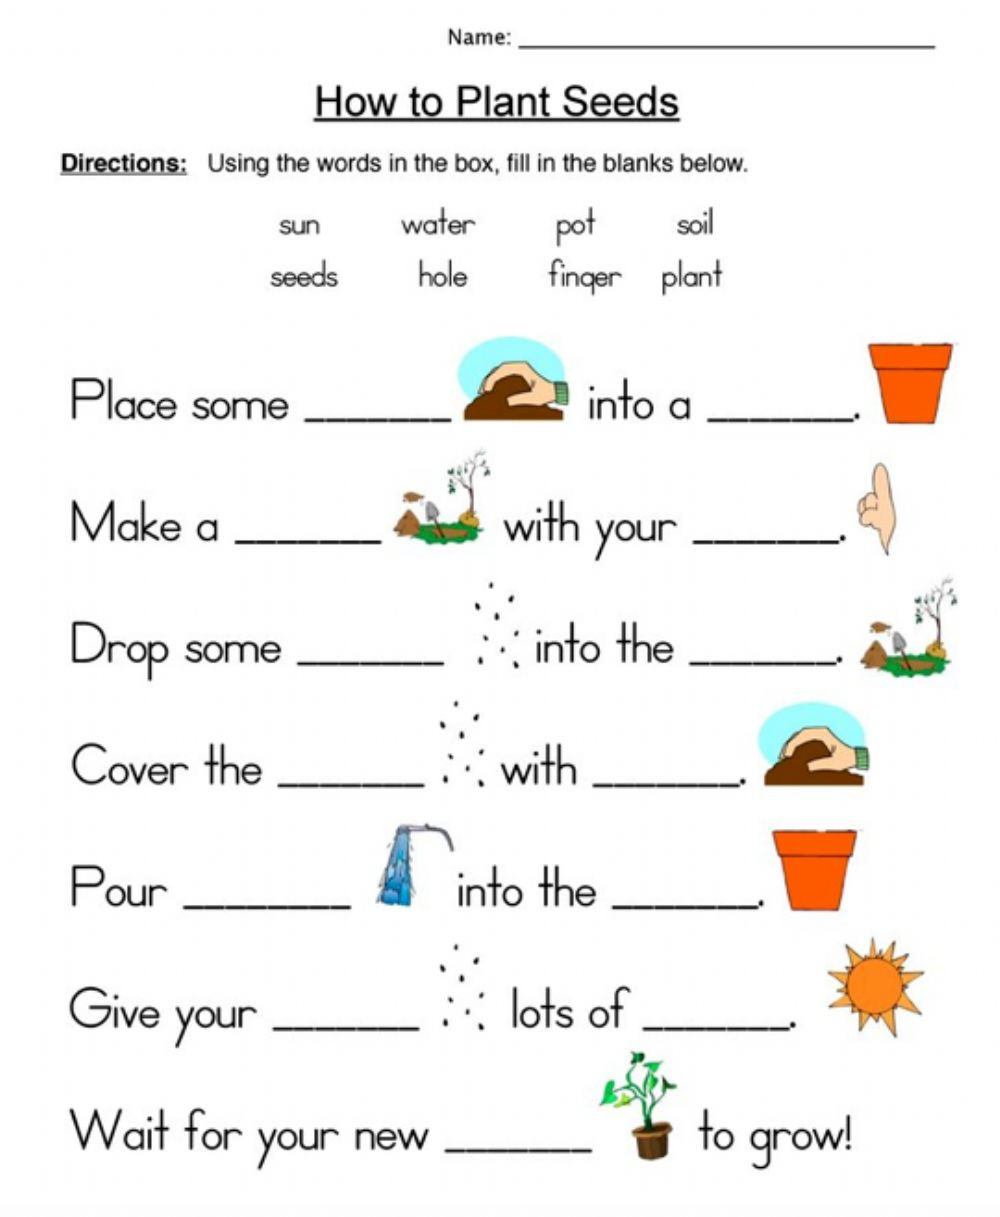 hight resolution of How to Plant Seeds worksheet